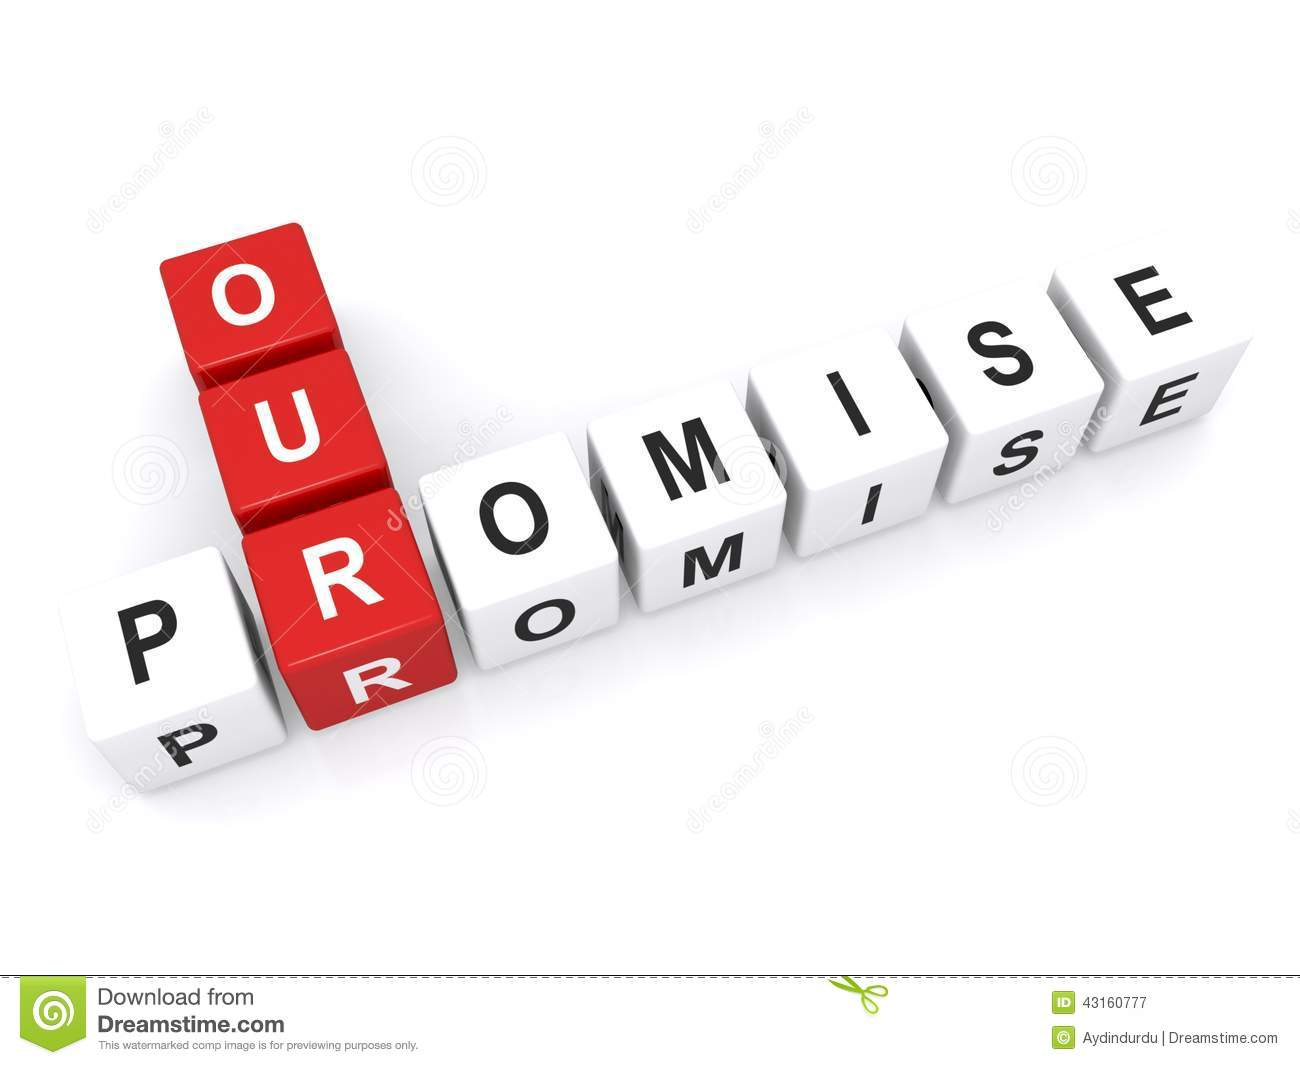 Our Promise Sign Stock Image Image Of Squares, Cubes. Chicago Manual Style Signs Of Stroke. Hormone Signs Of Stroke. Canker Sores Signs. Erythrasma Signs. Brain Tumor Signs. Pleuropneumonia Signs. Social Interaction Signs. Density Signs